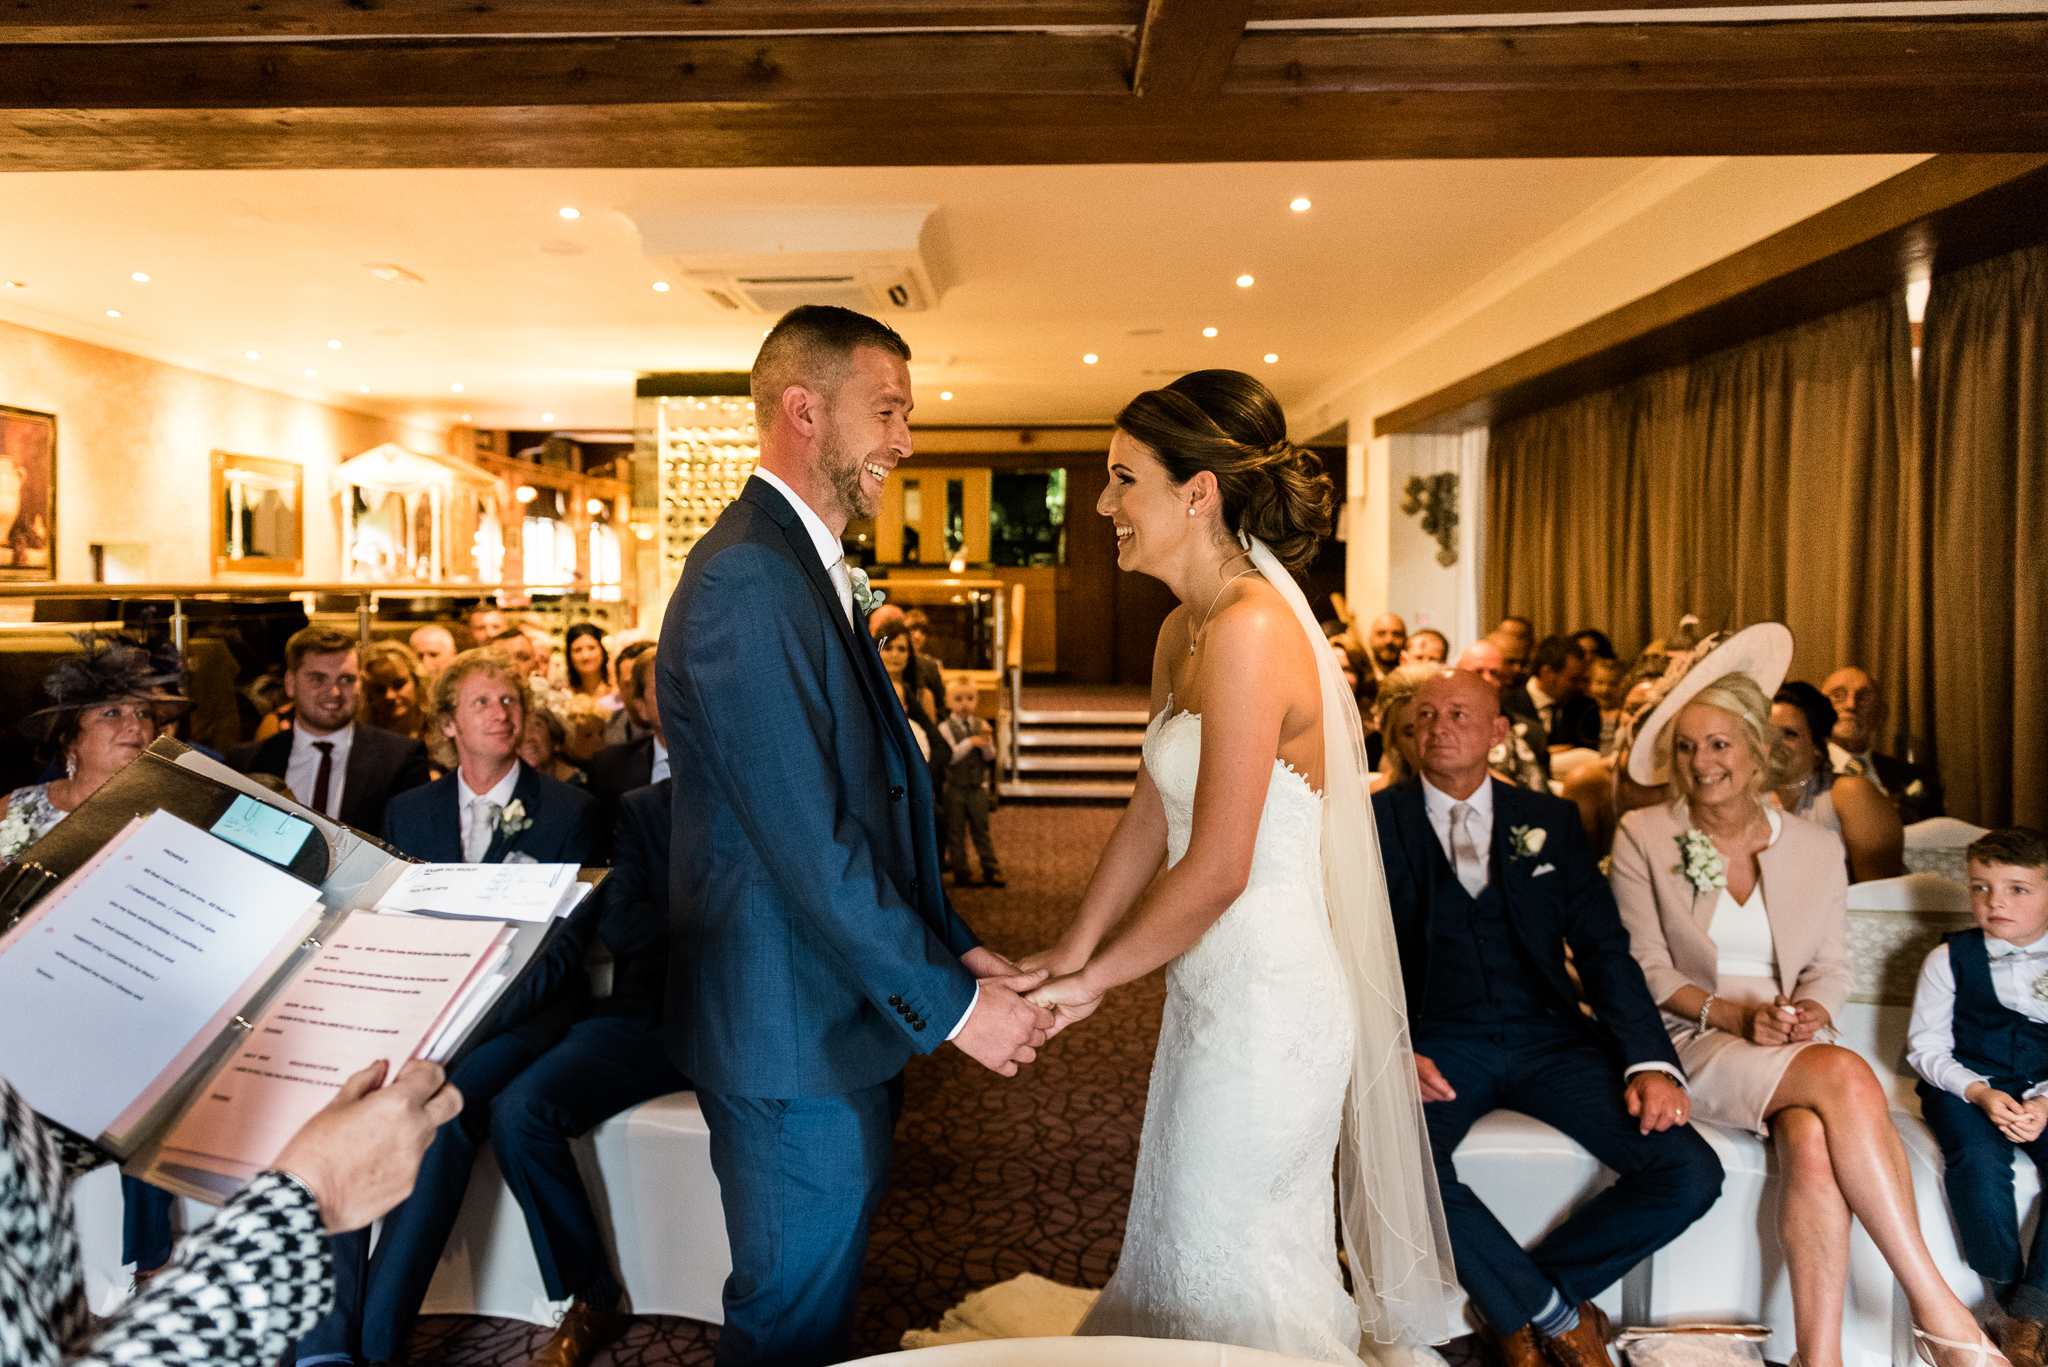 Staffordshire Moorlands Documentary Wedding Photography at The Three Horseshoes, Blackshaw Moor - Jenny Harper-20.jpg